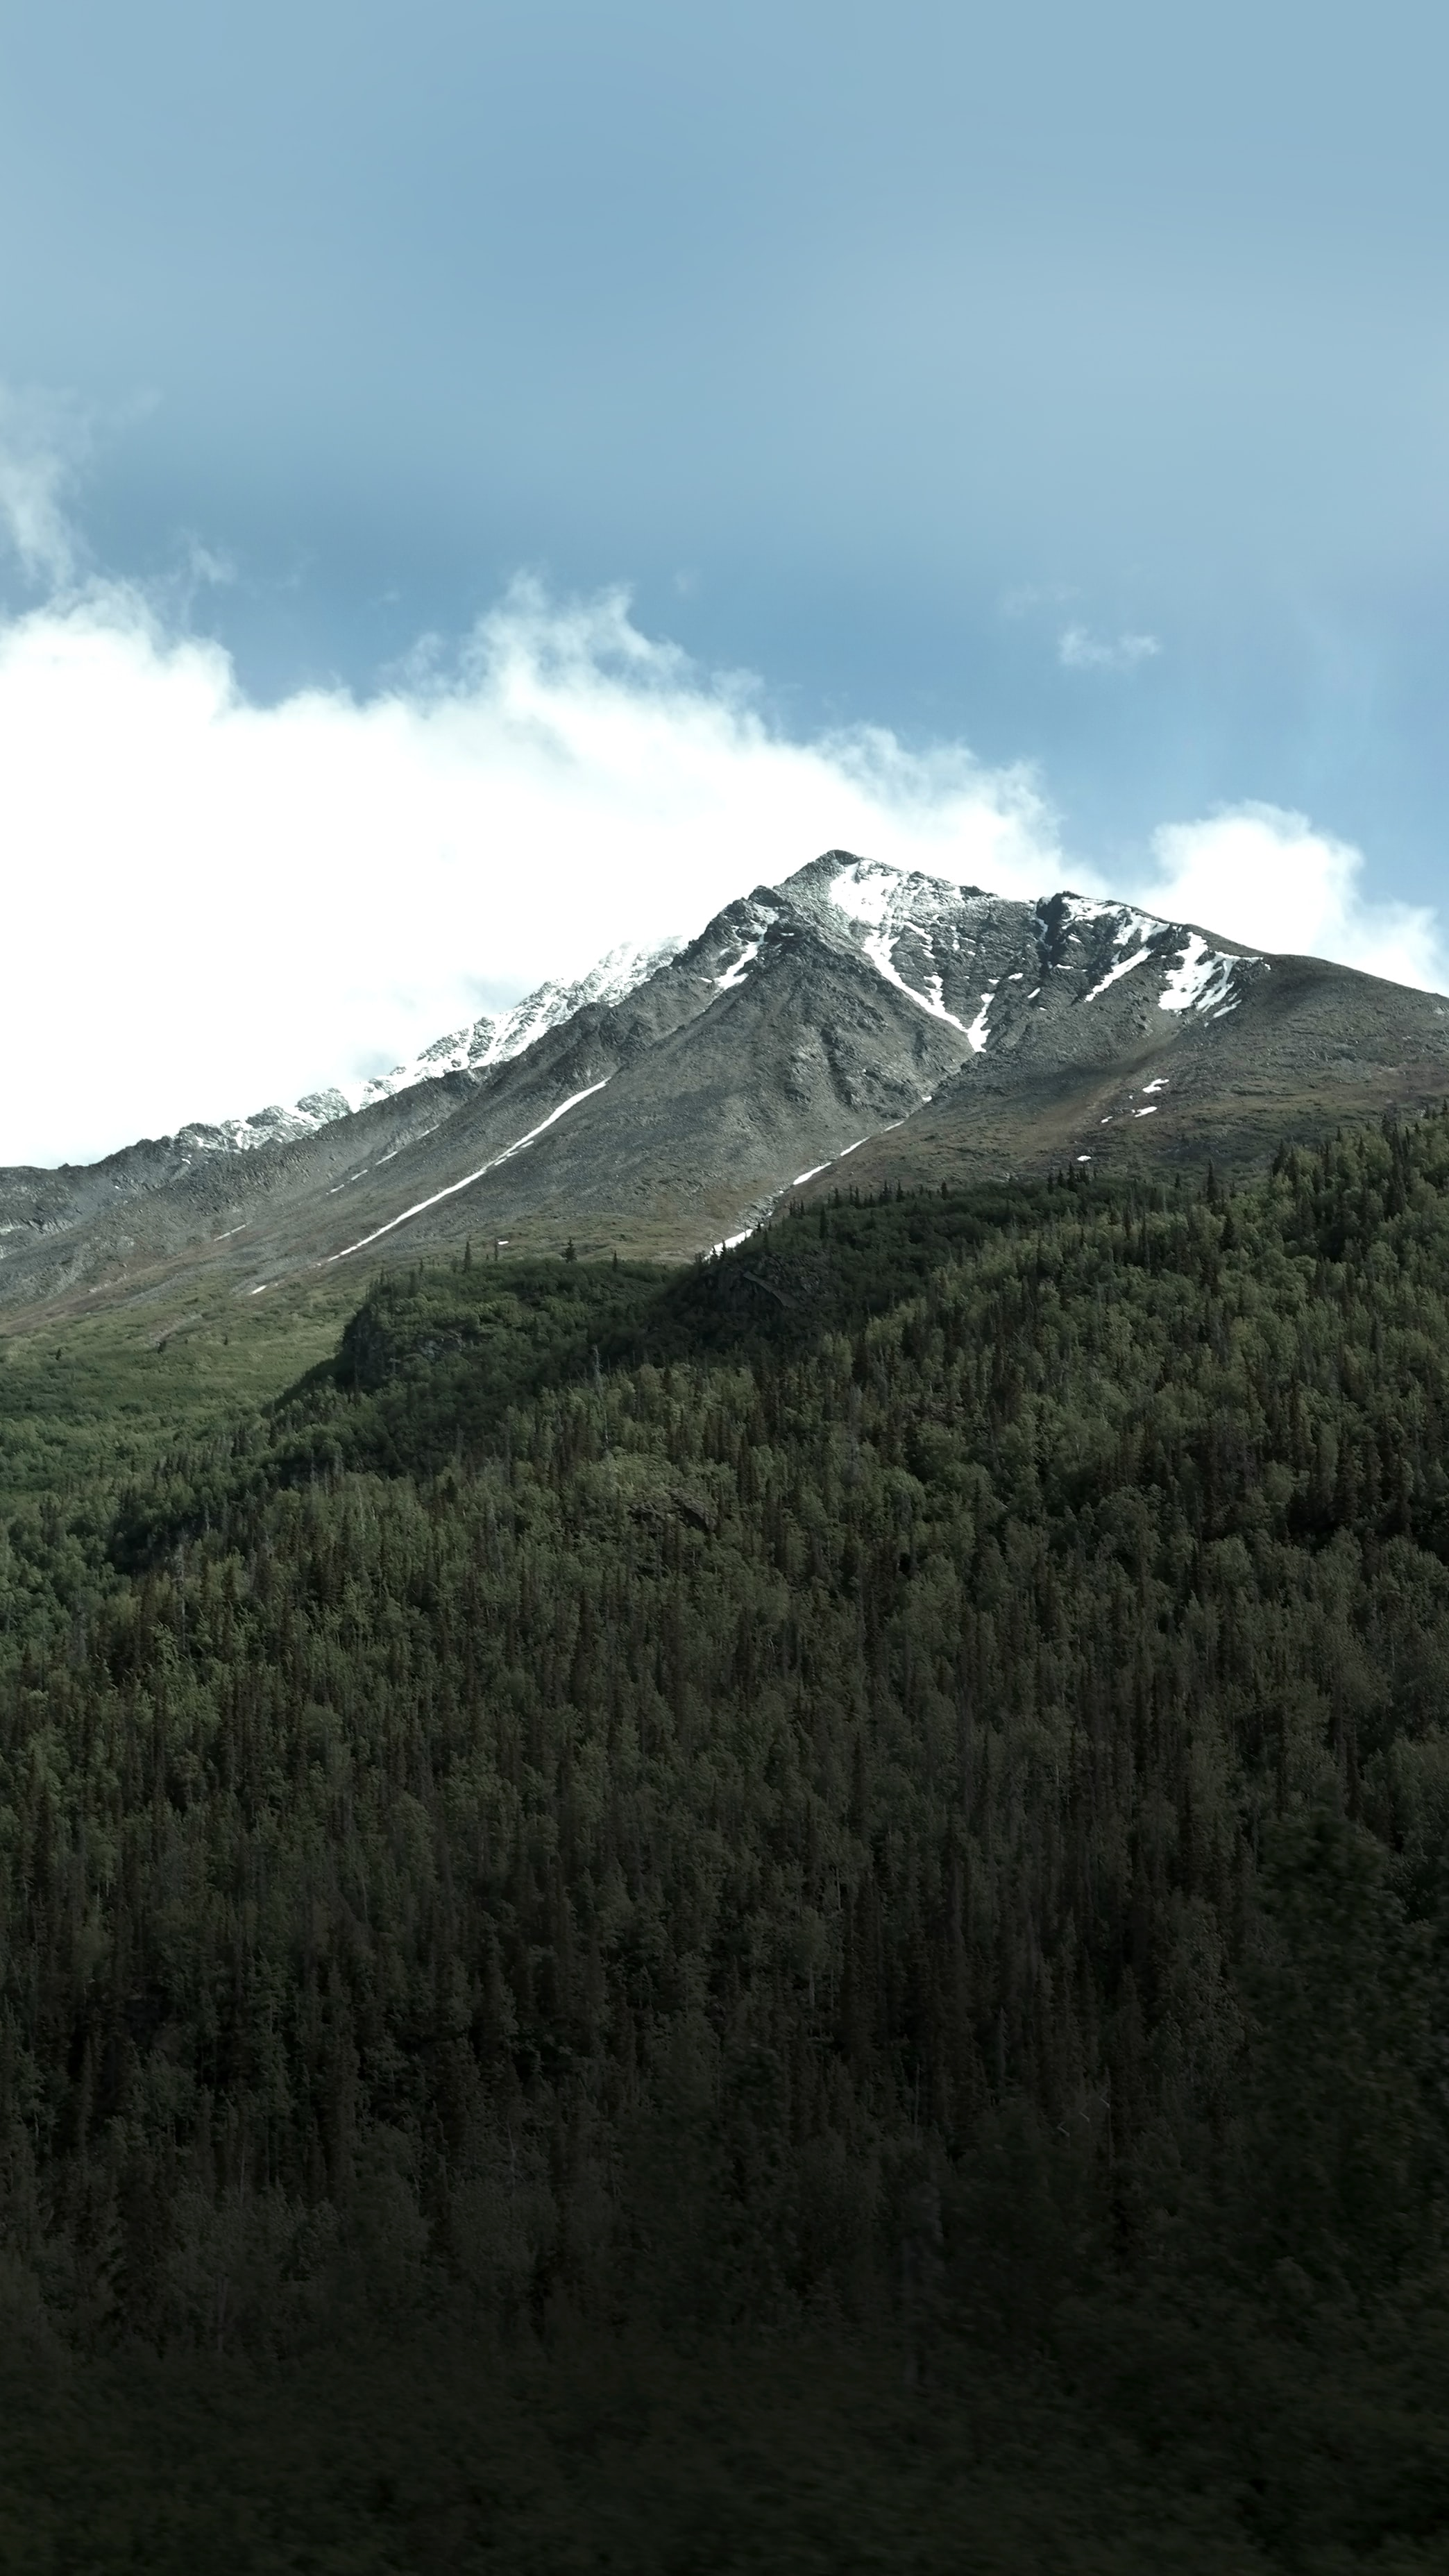 A long wooded slope of a snow-crested mountain